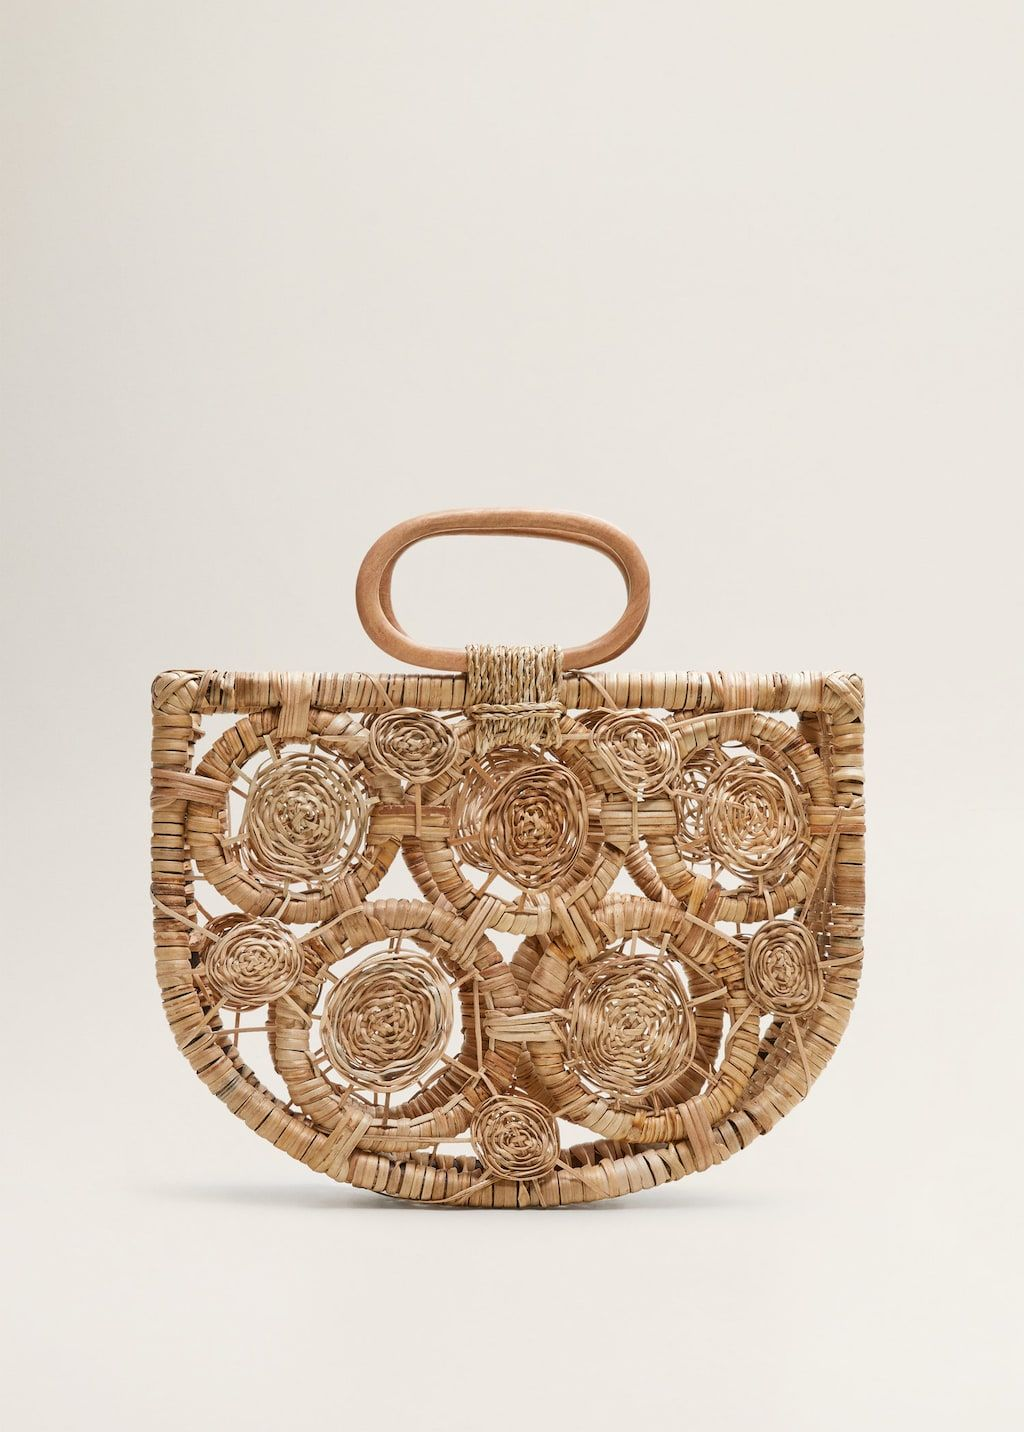 ad651626bf Handmade raffia bag - Women in 2019 | Bags Bags Bags | Bags, Wooden ...